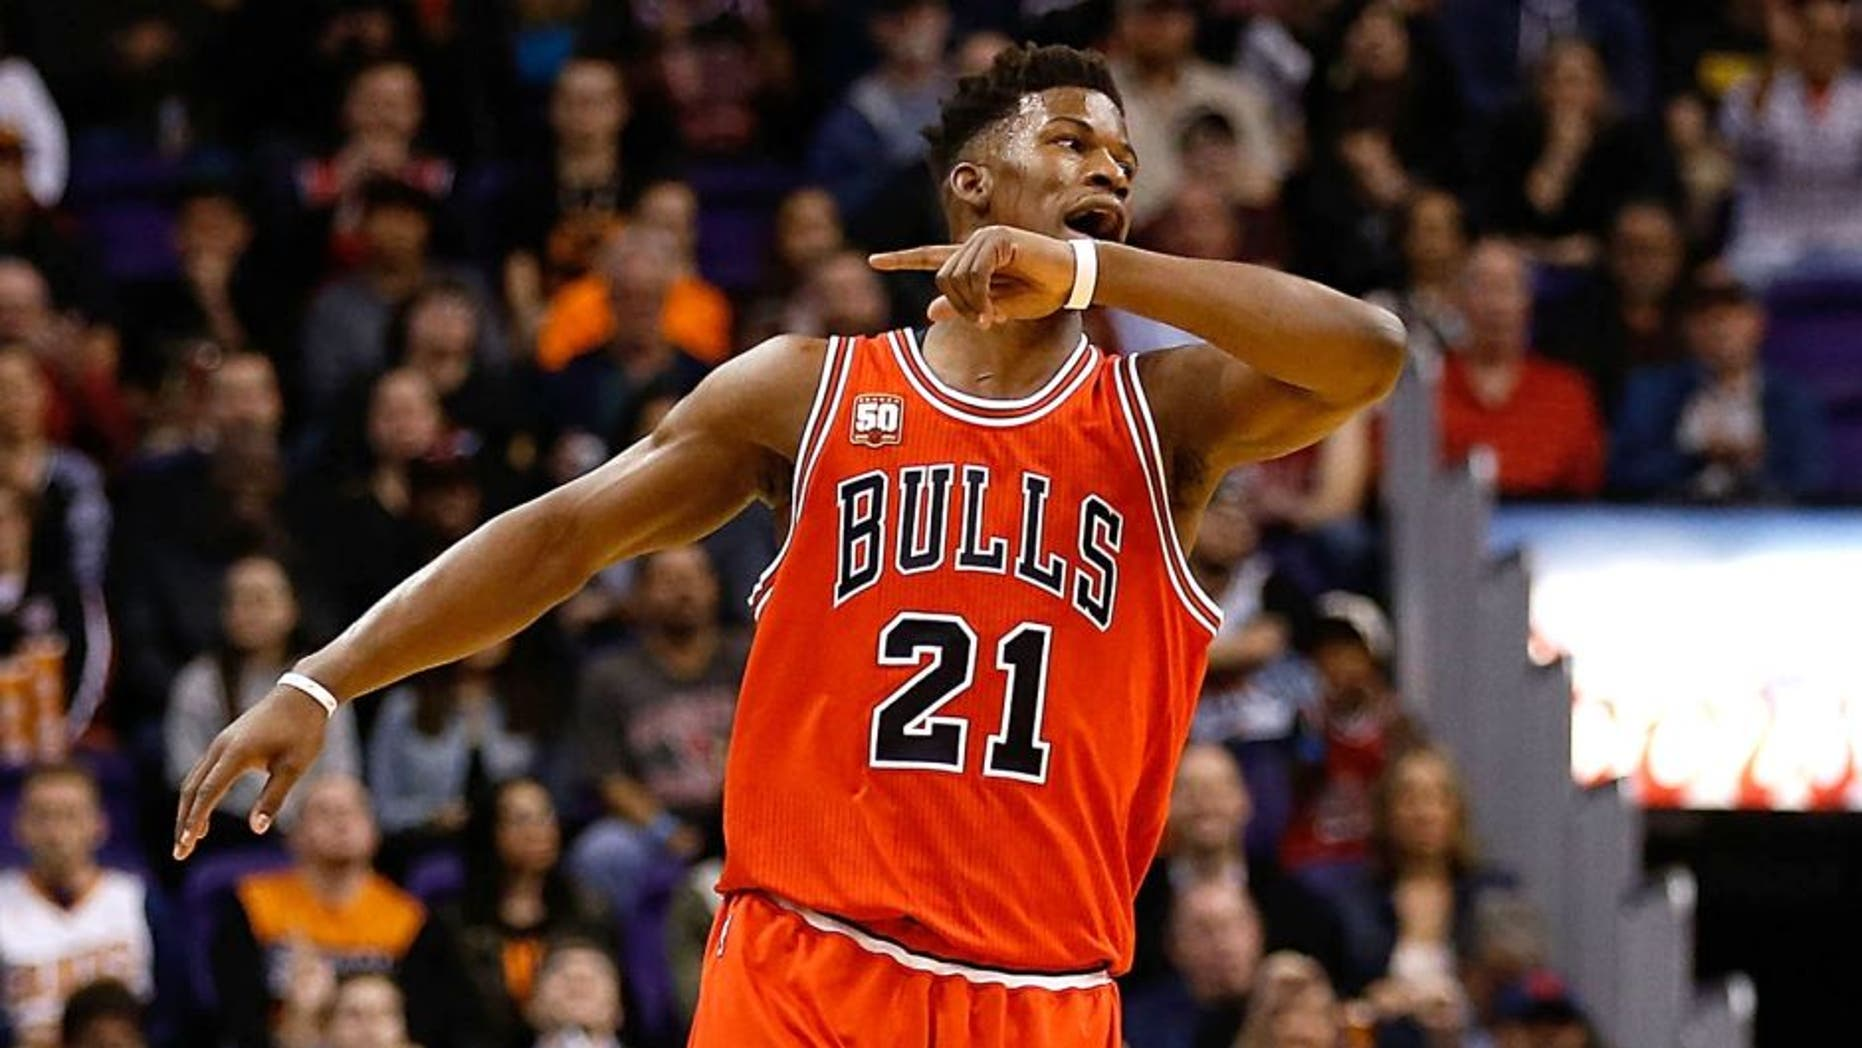 PHOENIX, AZ - NOVEMBER 18: Jimmy Butler #21 of the Chicago Bulls reacts after hitting a three point shot against the Phoenix Suns during the first half of the NBA game at Talking Stick Resort Arena on November 18, 2015 in Phoenix, Arizona. NOTE TO USER: User expressly acknowledges and agrees that, by downloading and or using this photograph, User is consenting to the terms and conditions of the Getty Images License Agreement. (Photo by Christian Petersen/Getty Images)